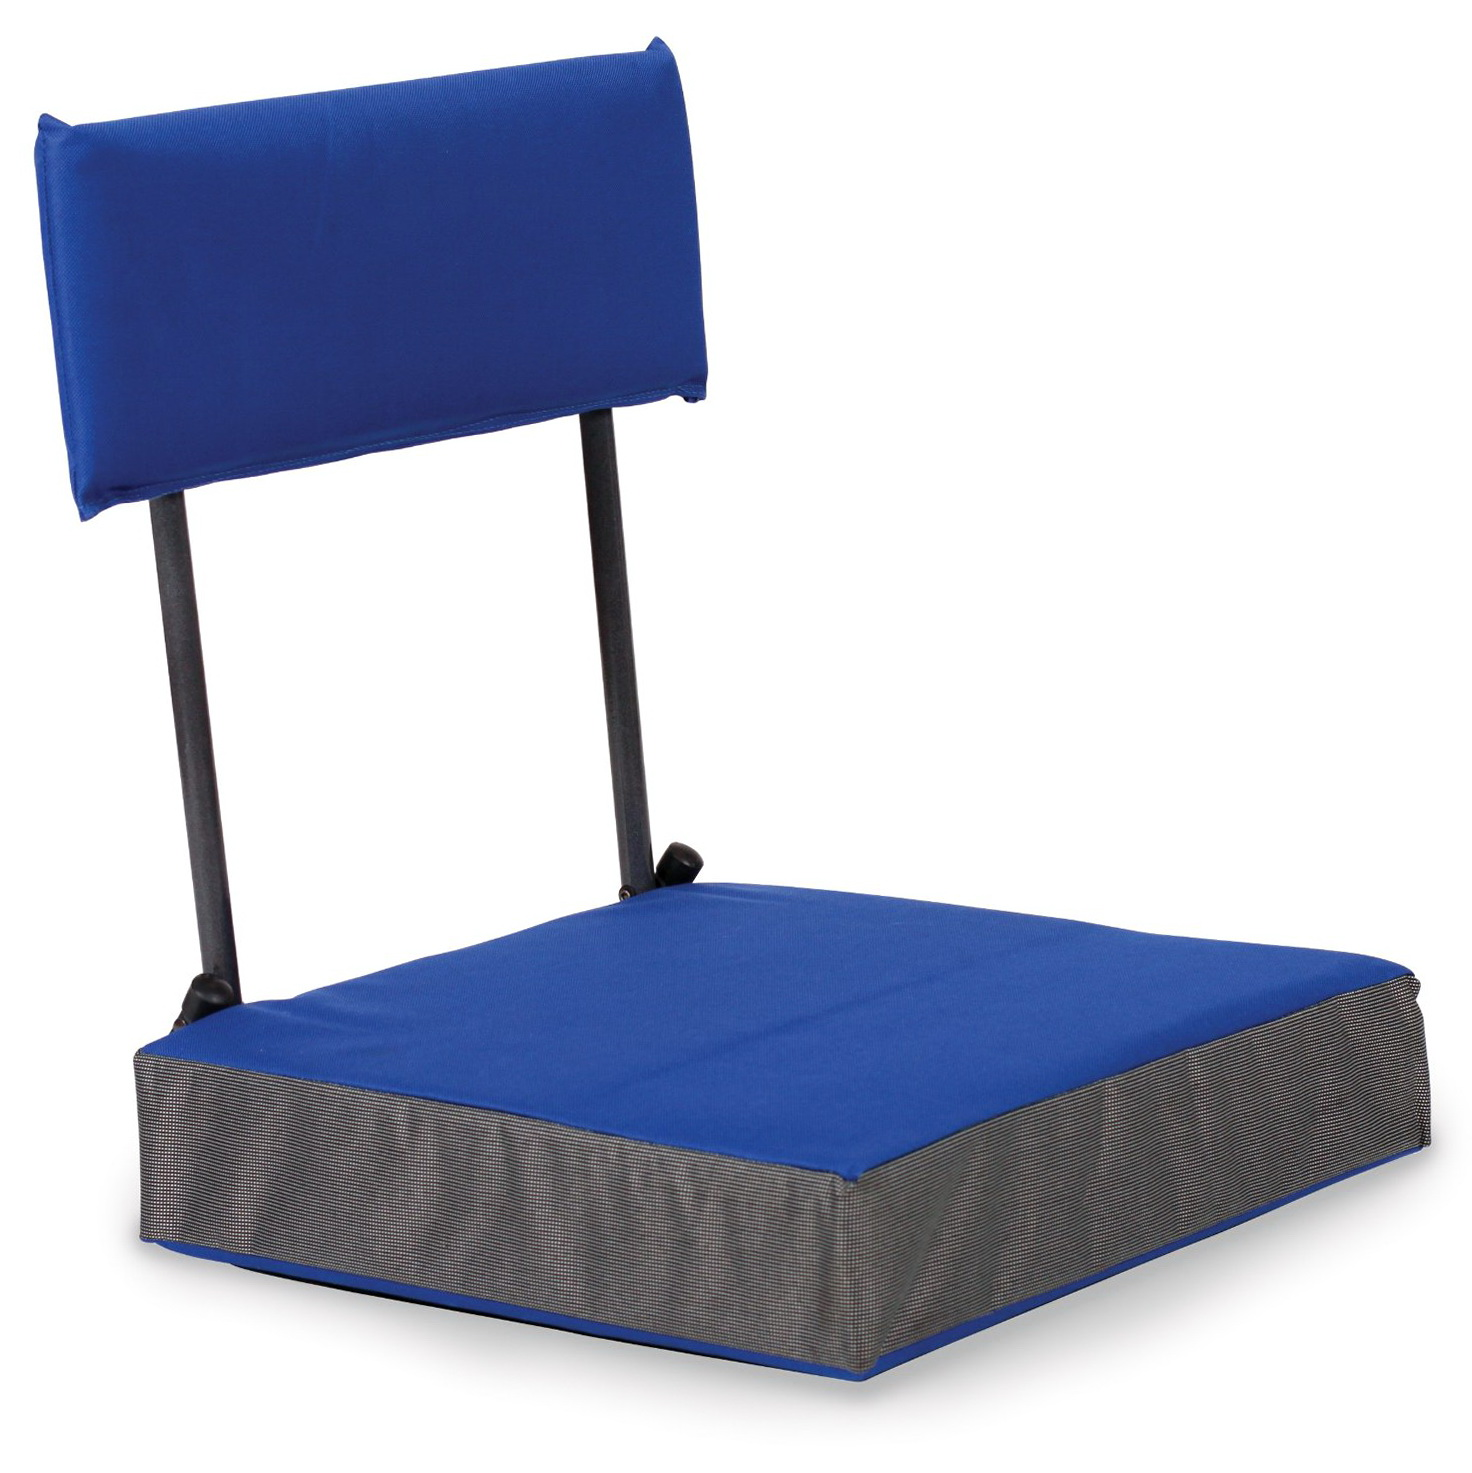 Portable Seat Cushion For A Bleacher Seat